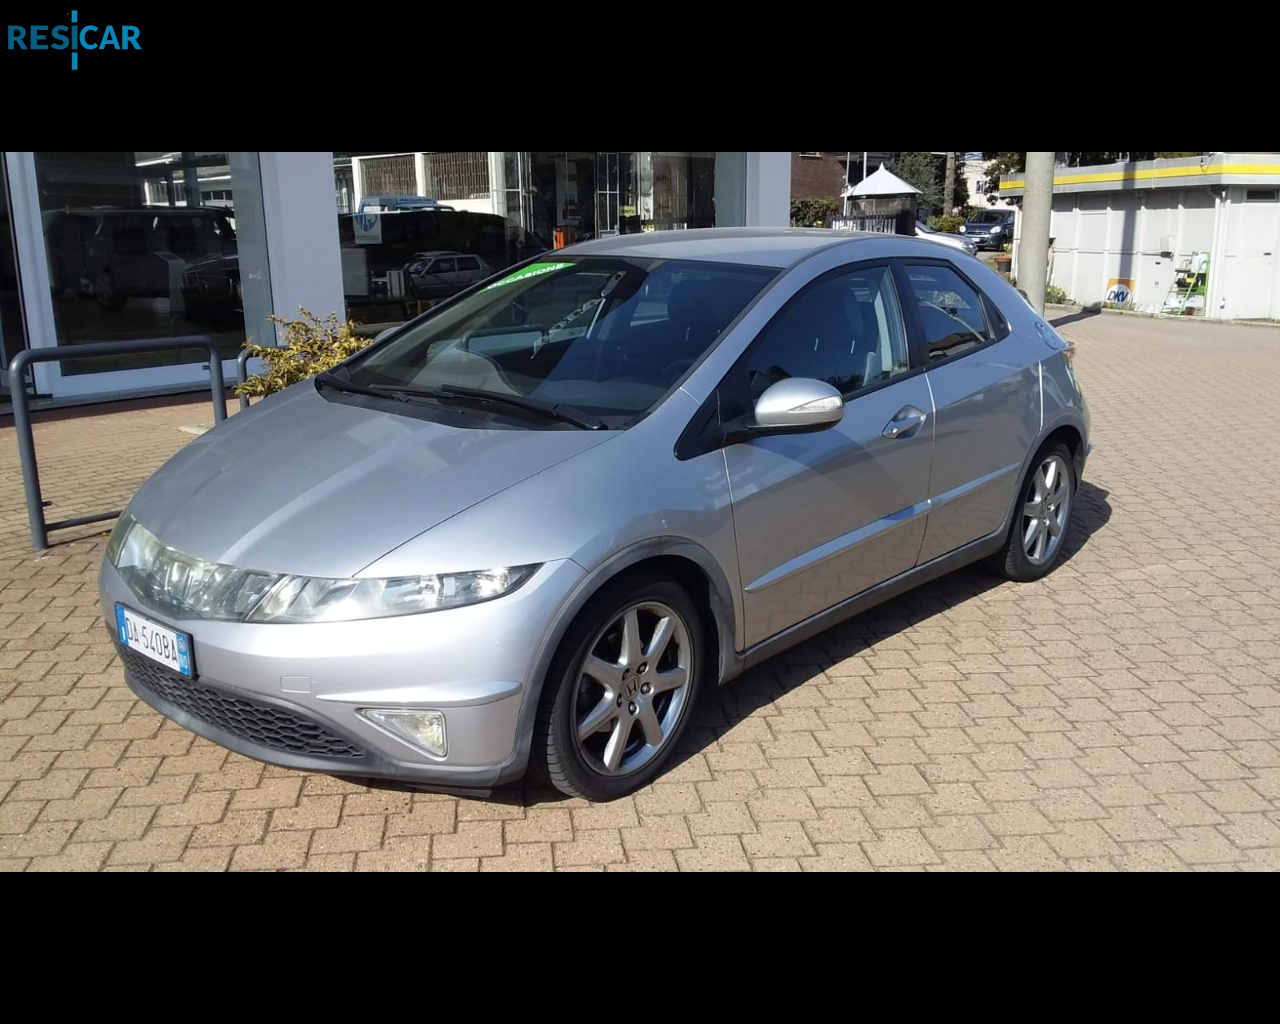 Honda - 1.8 i-vtec exclusive le (executive) - 1569228 - Resicar - 01